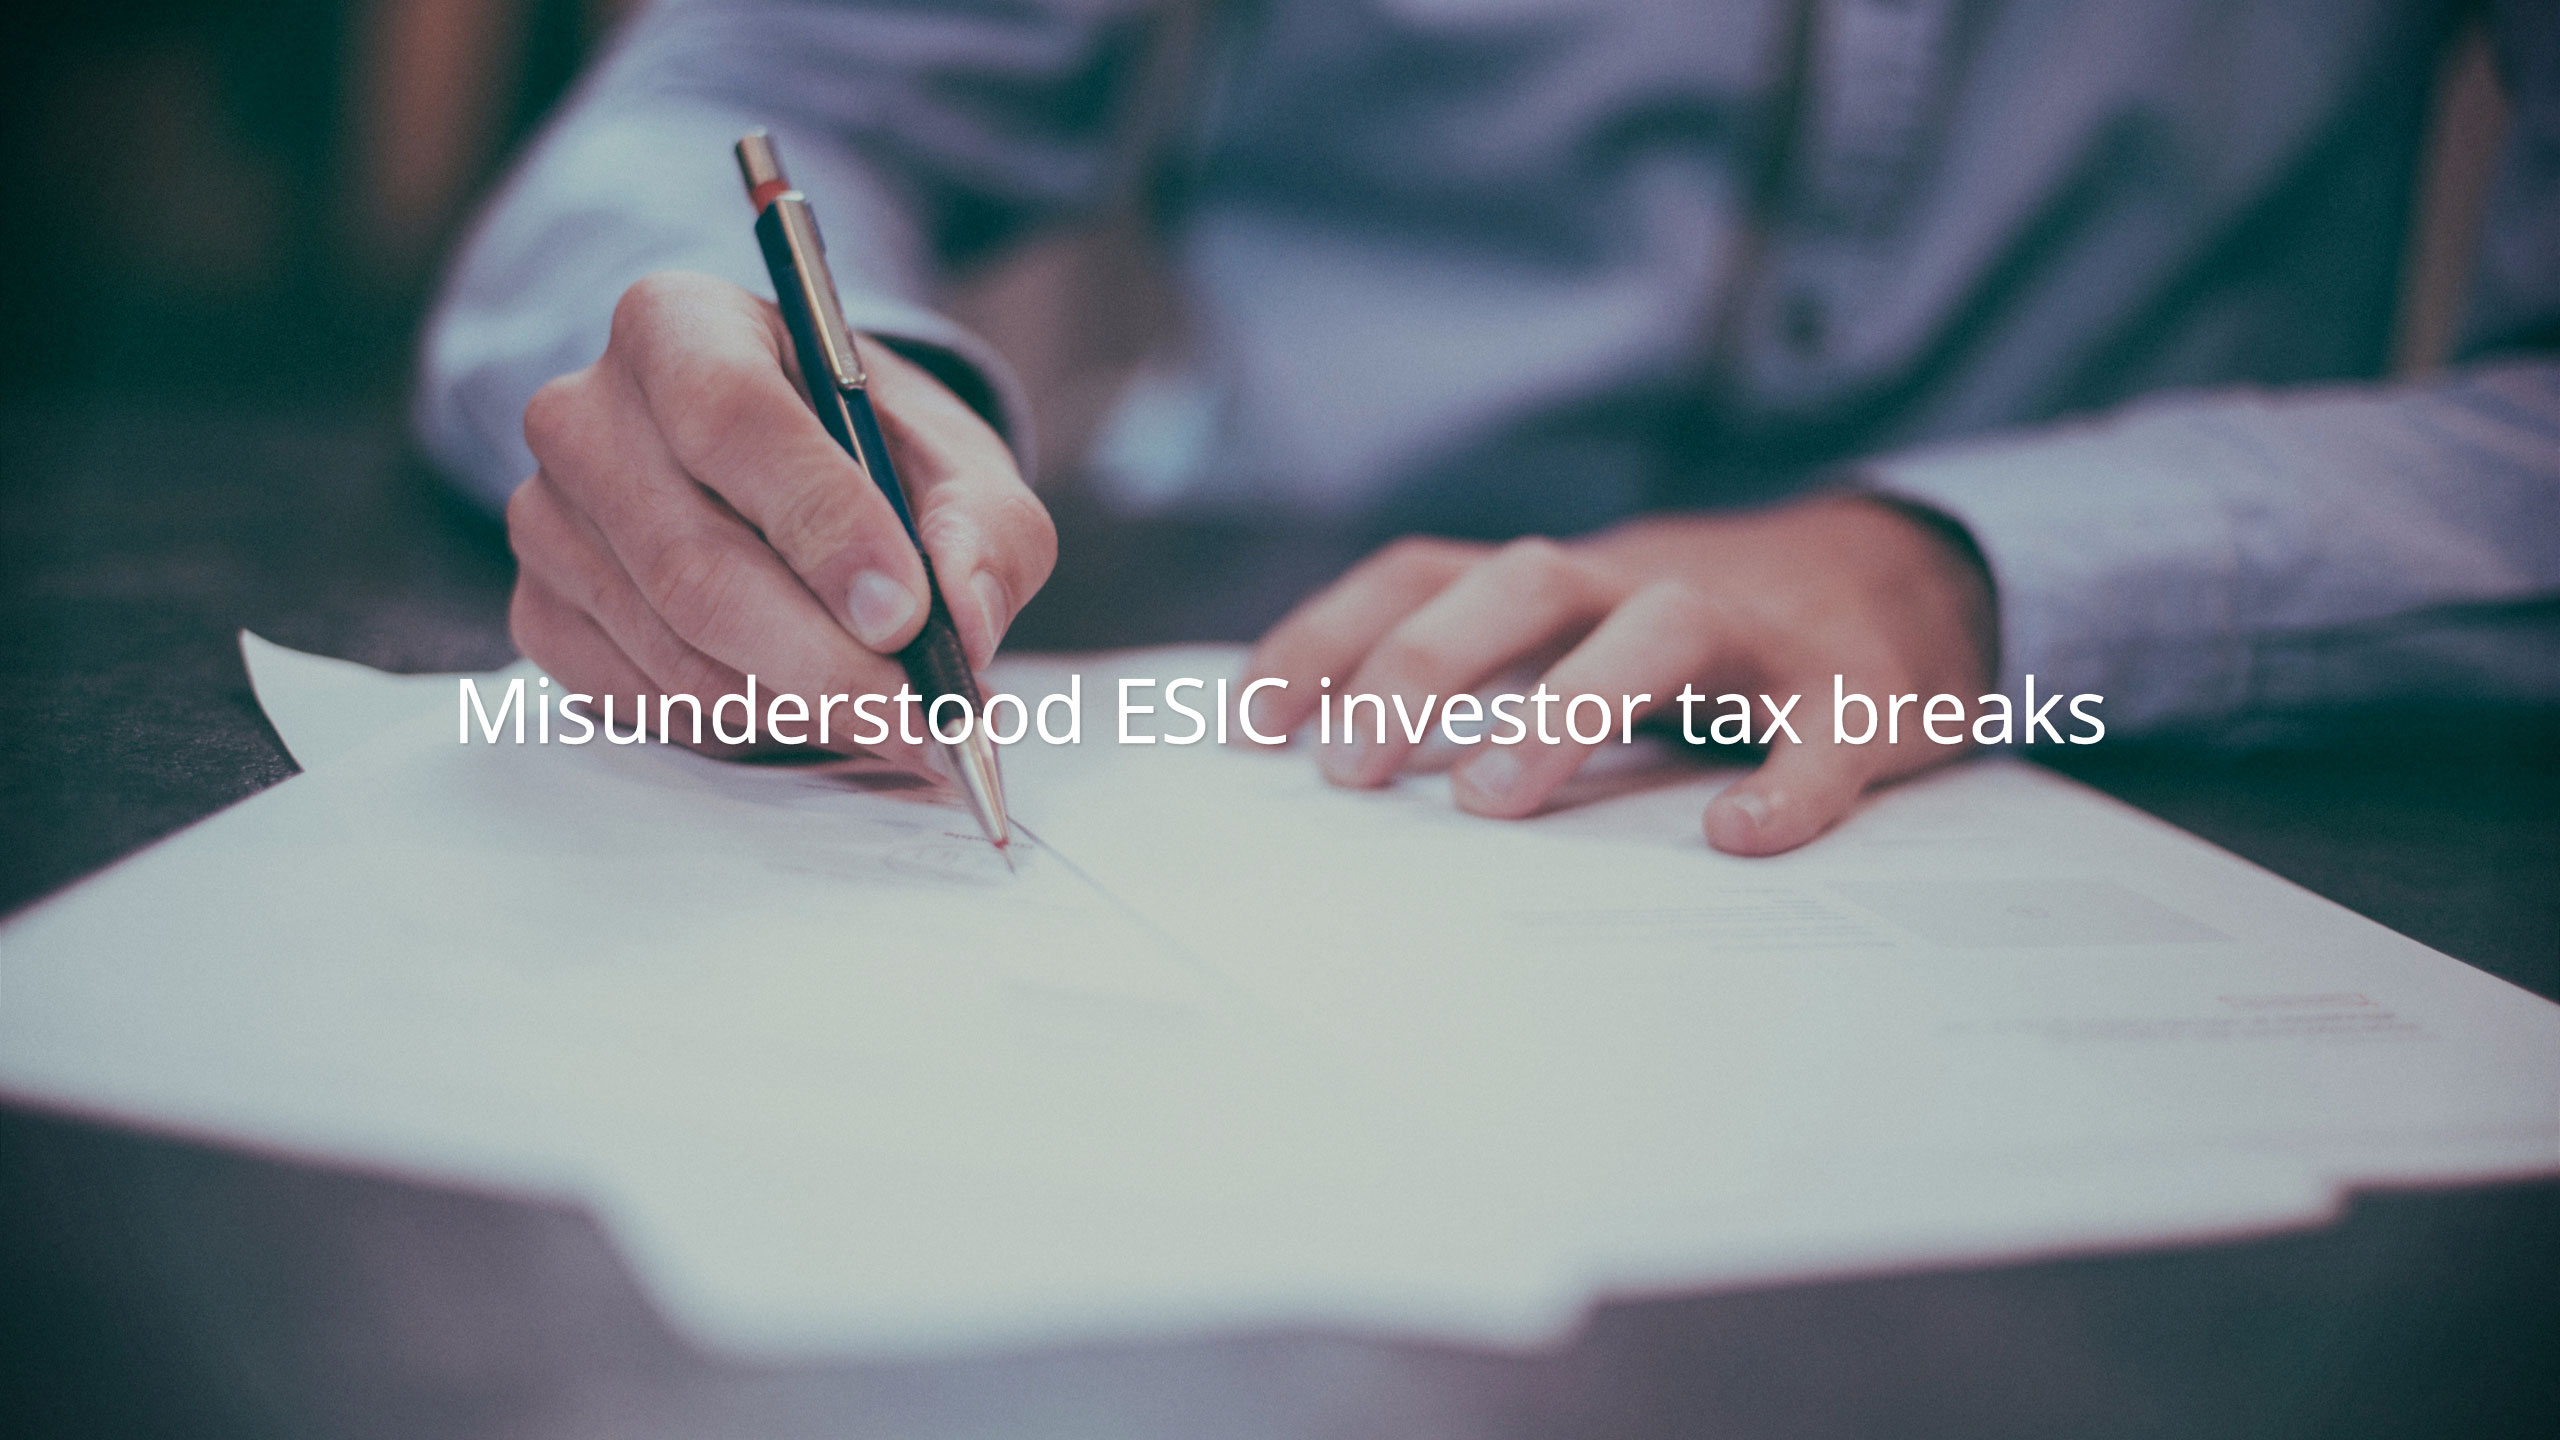 Early Stage Innovation Company investor tax breaks misunderstood by founders, investors